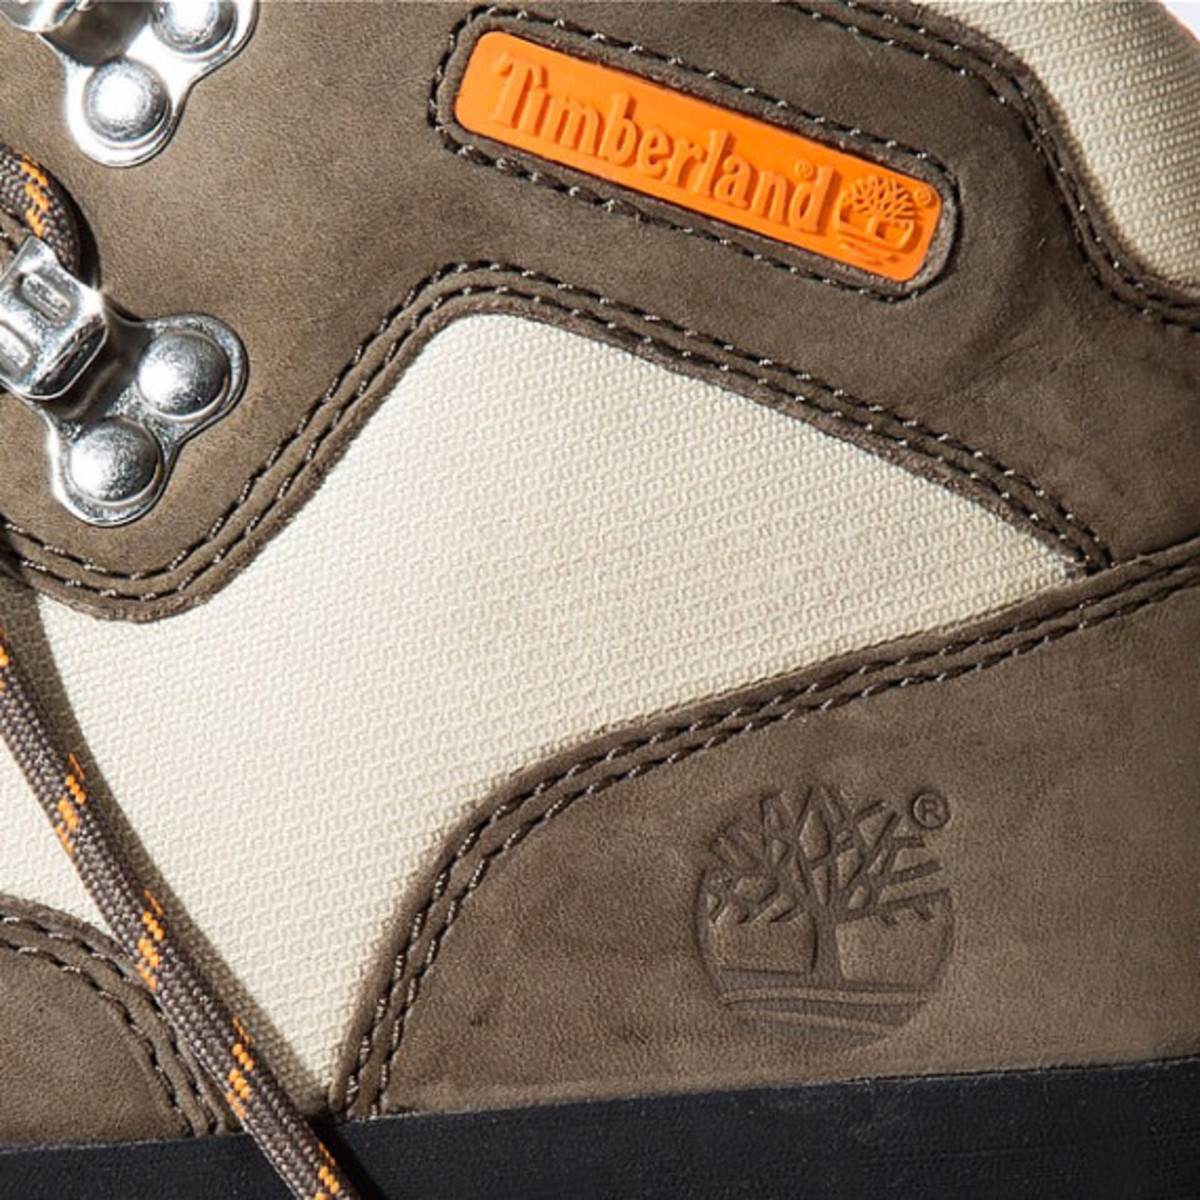 Stussy for Timberland - Euro Hiker Boots | Release Info - 1